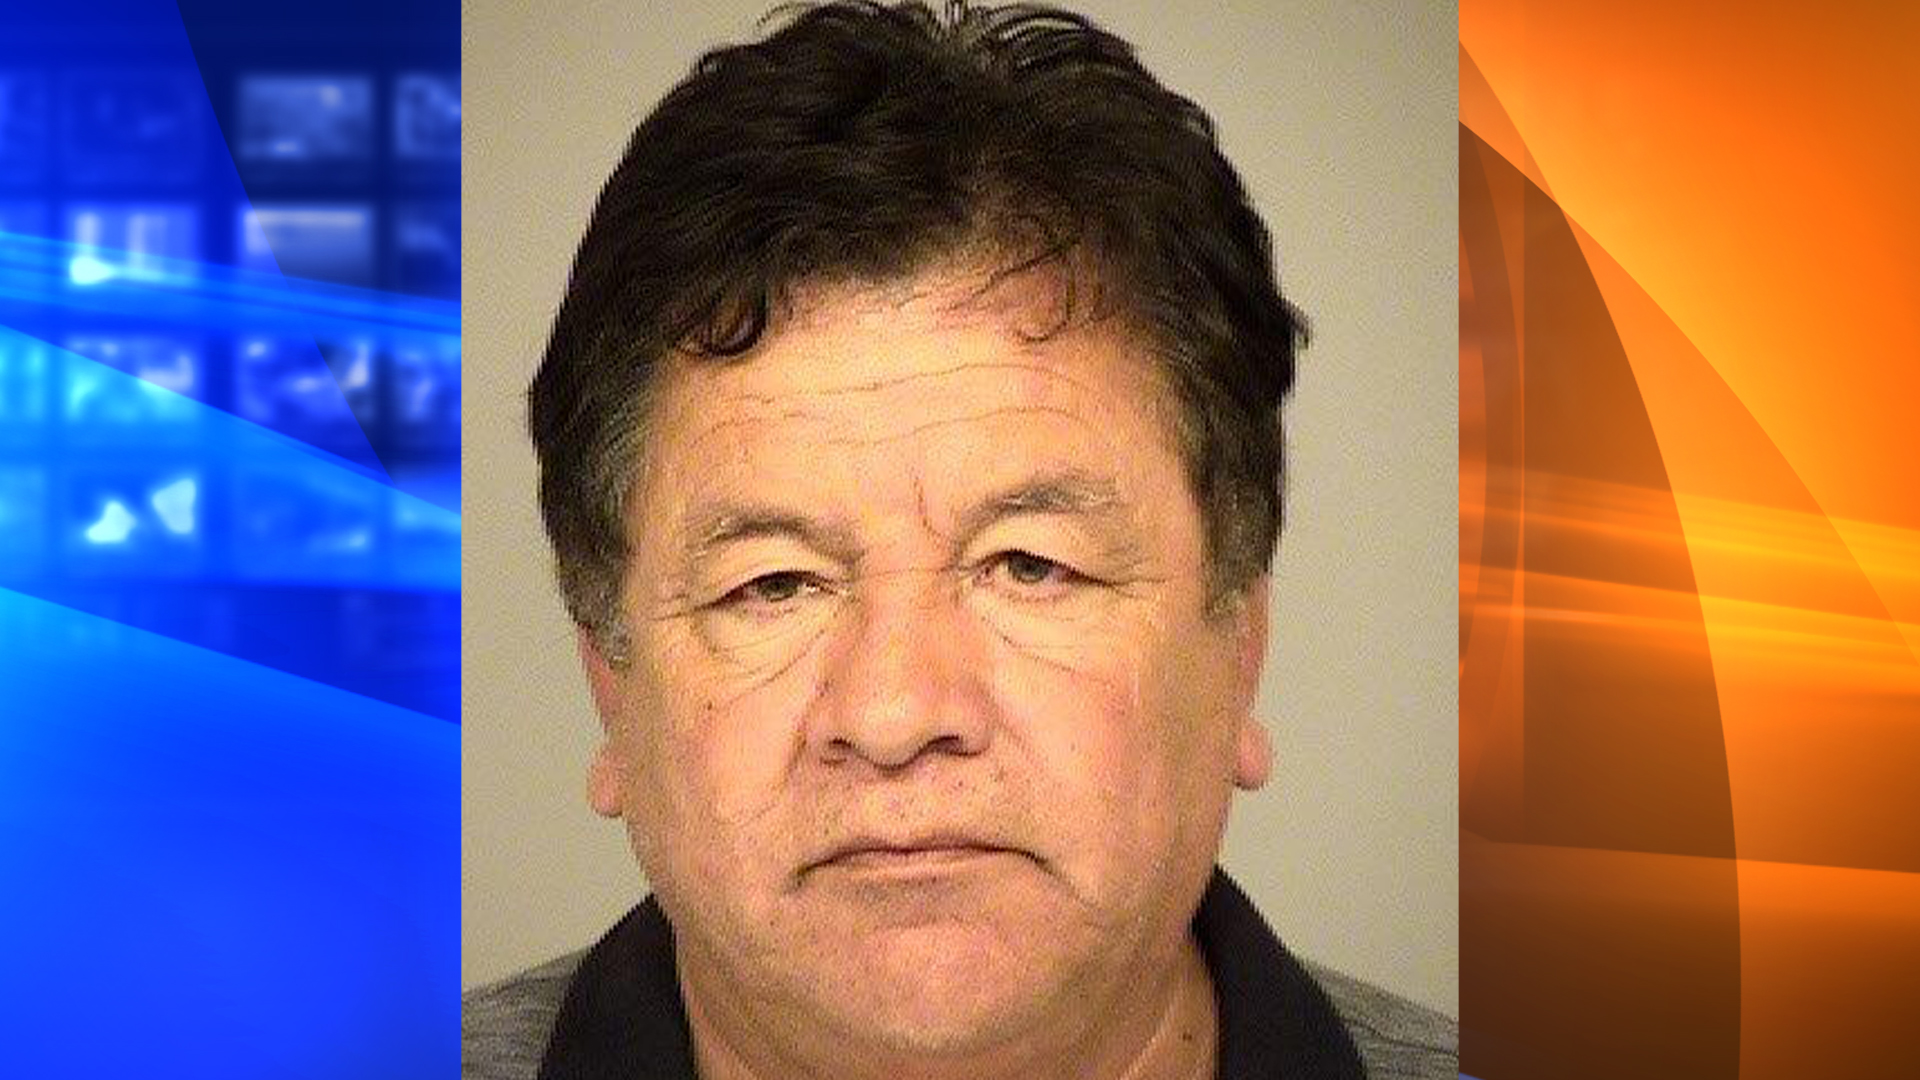 Nelson Davila Cruz, 63, appears in a booking photo released by the Ventura County Sheriff's Office on Oct. 14, 2019.